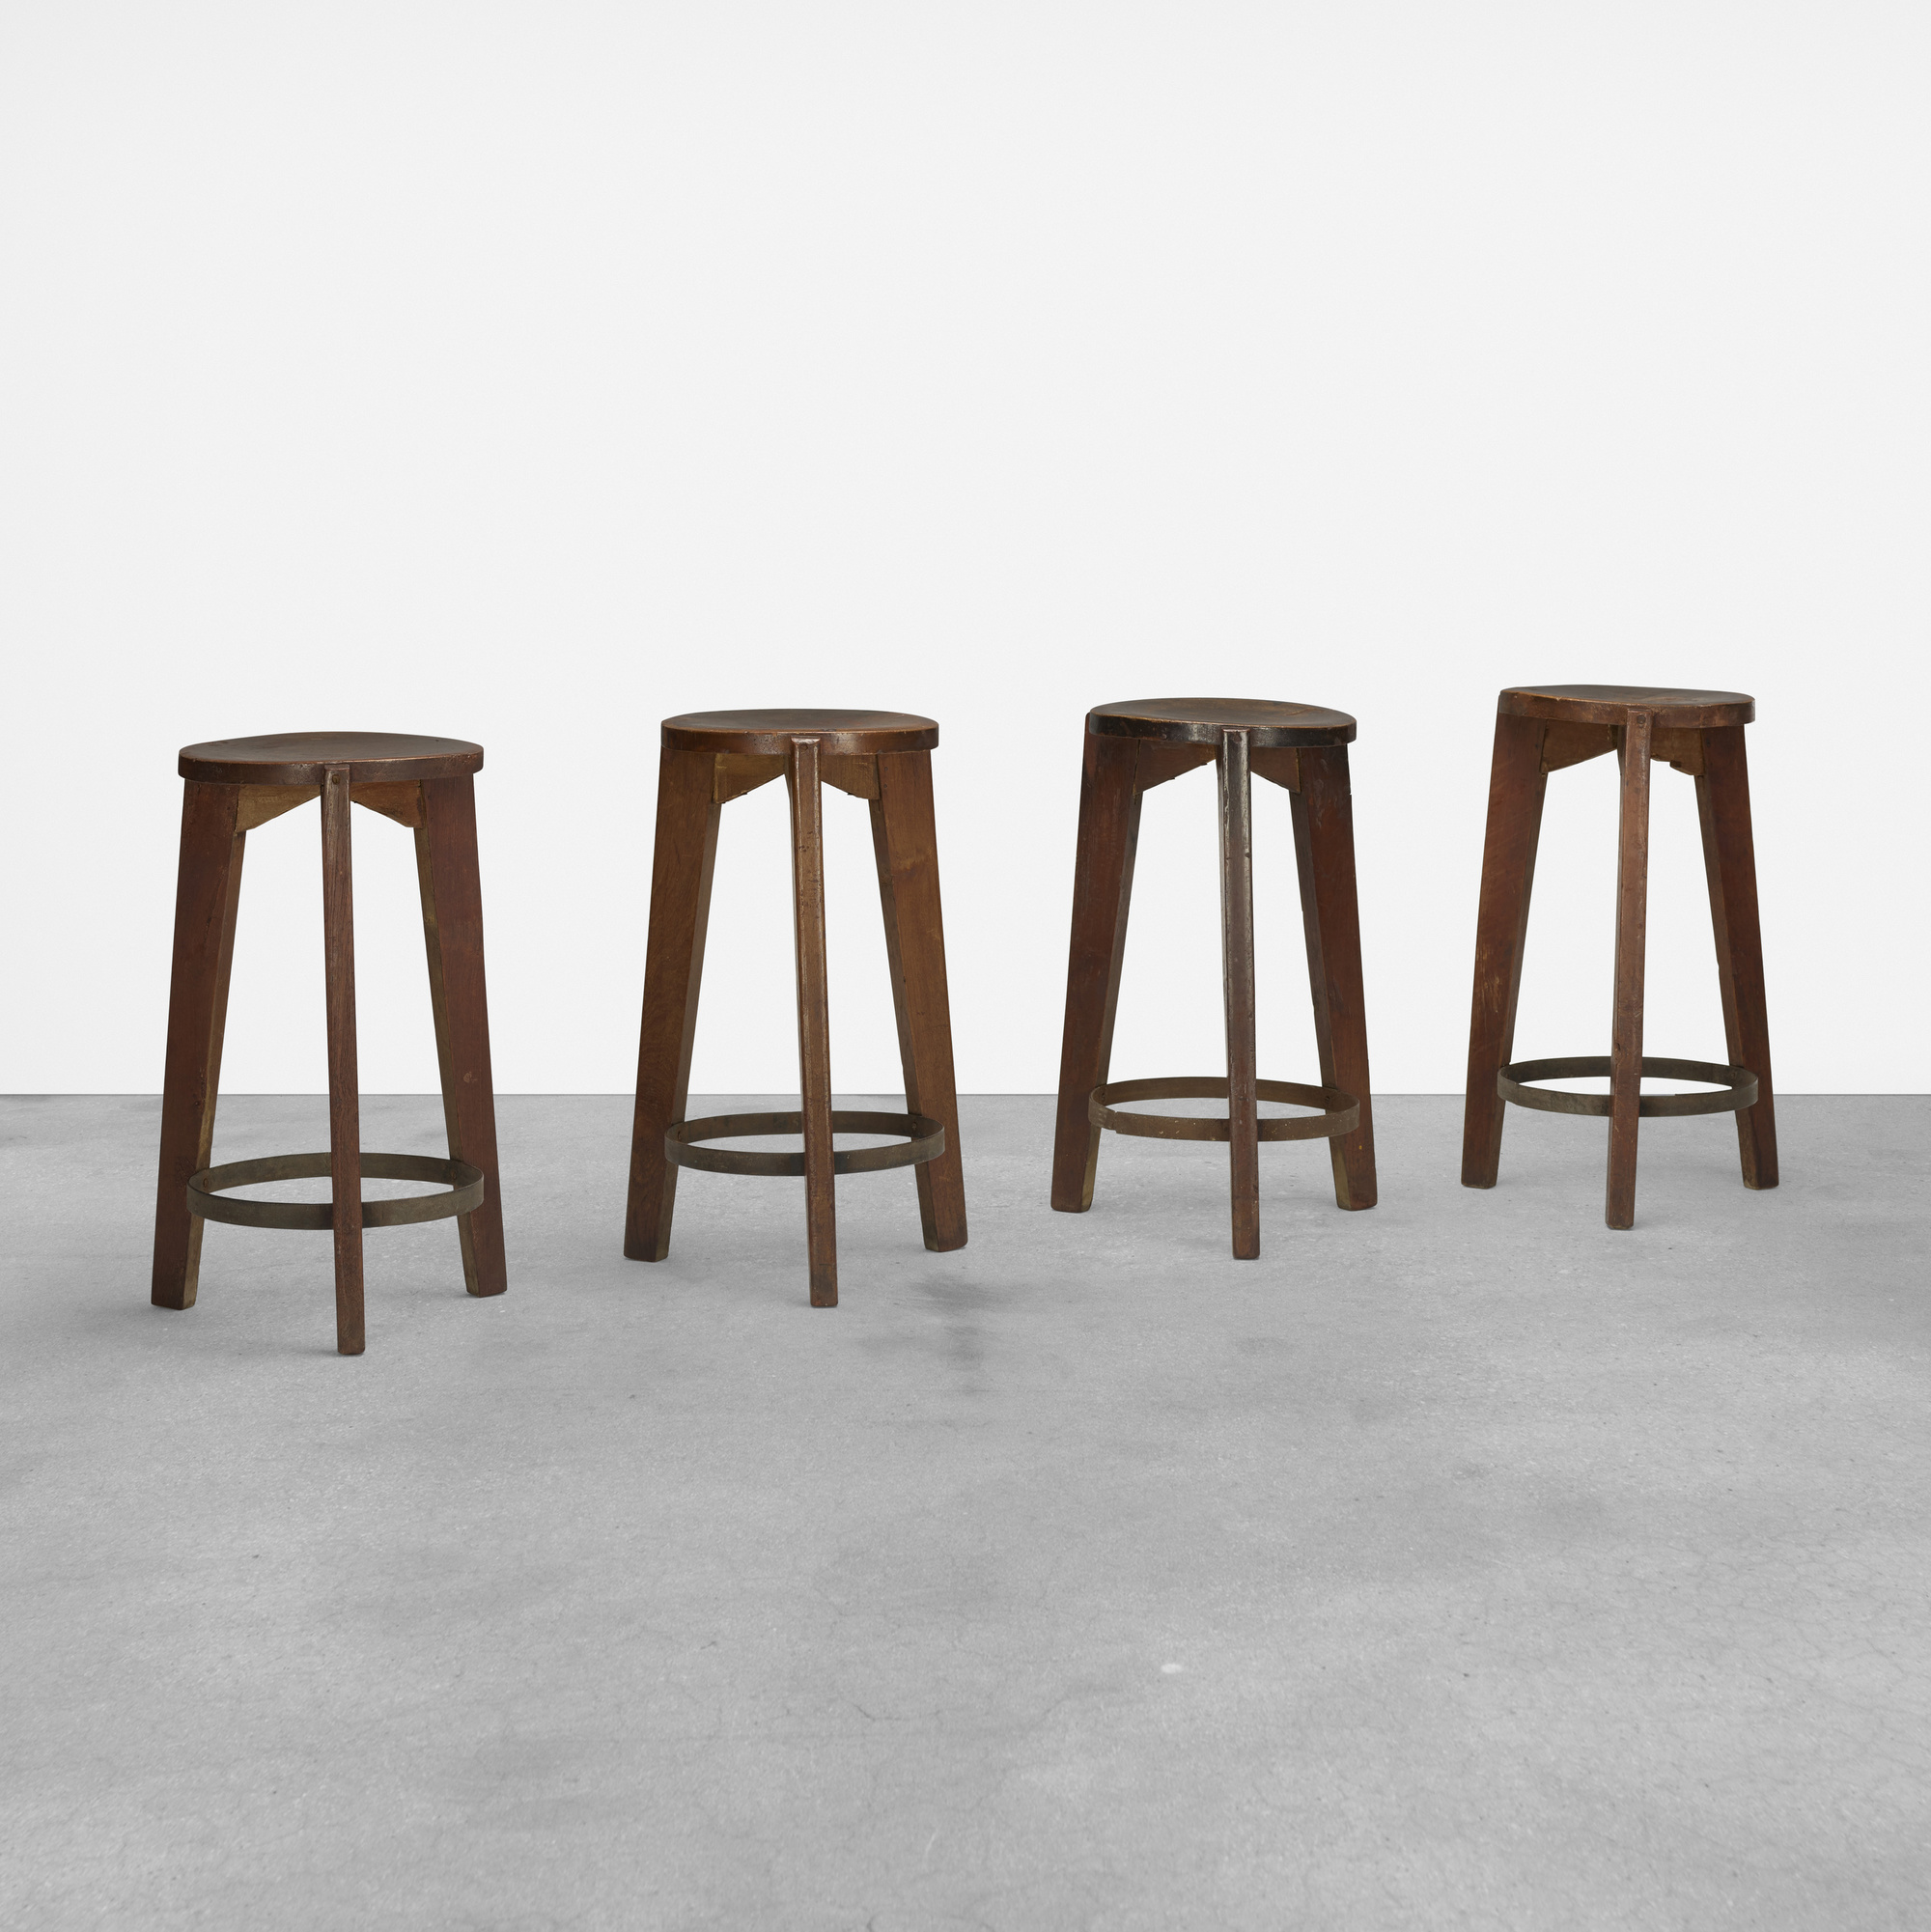 106: Pierre Jeanneret / set of four stools from Punjab University, Chandigarh (1 of 4)